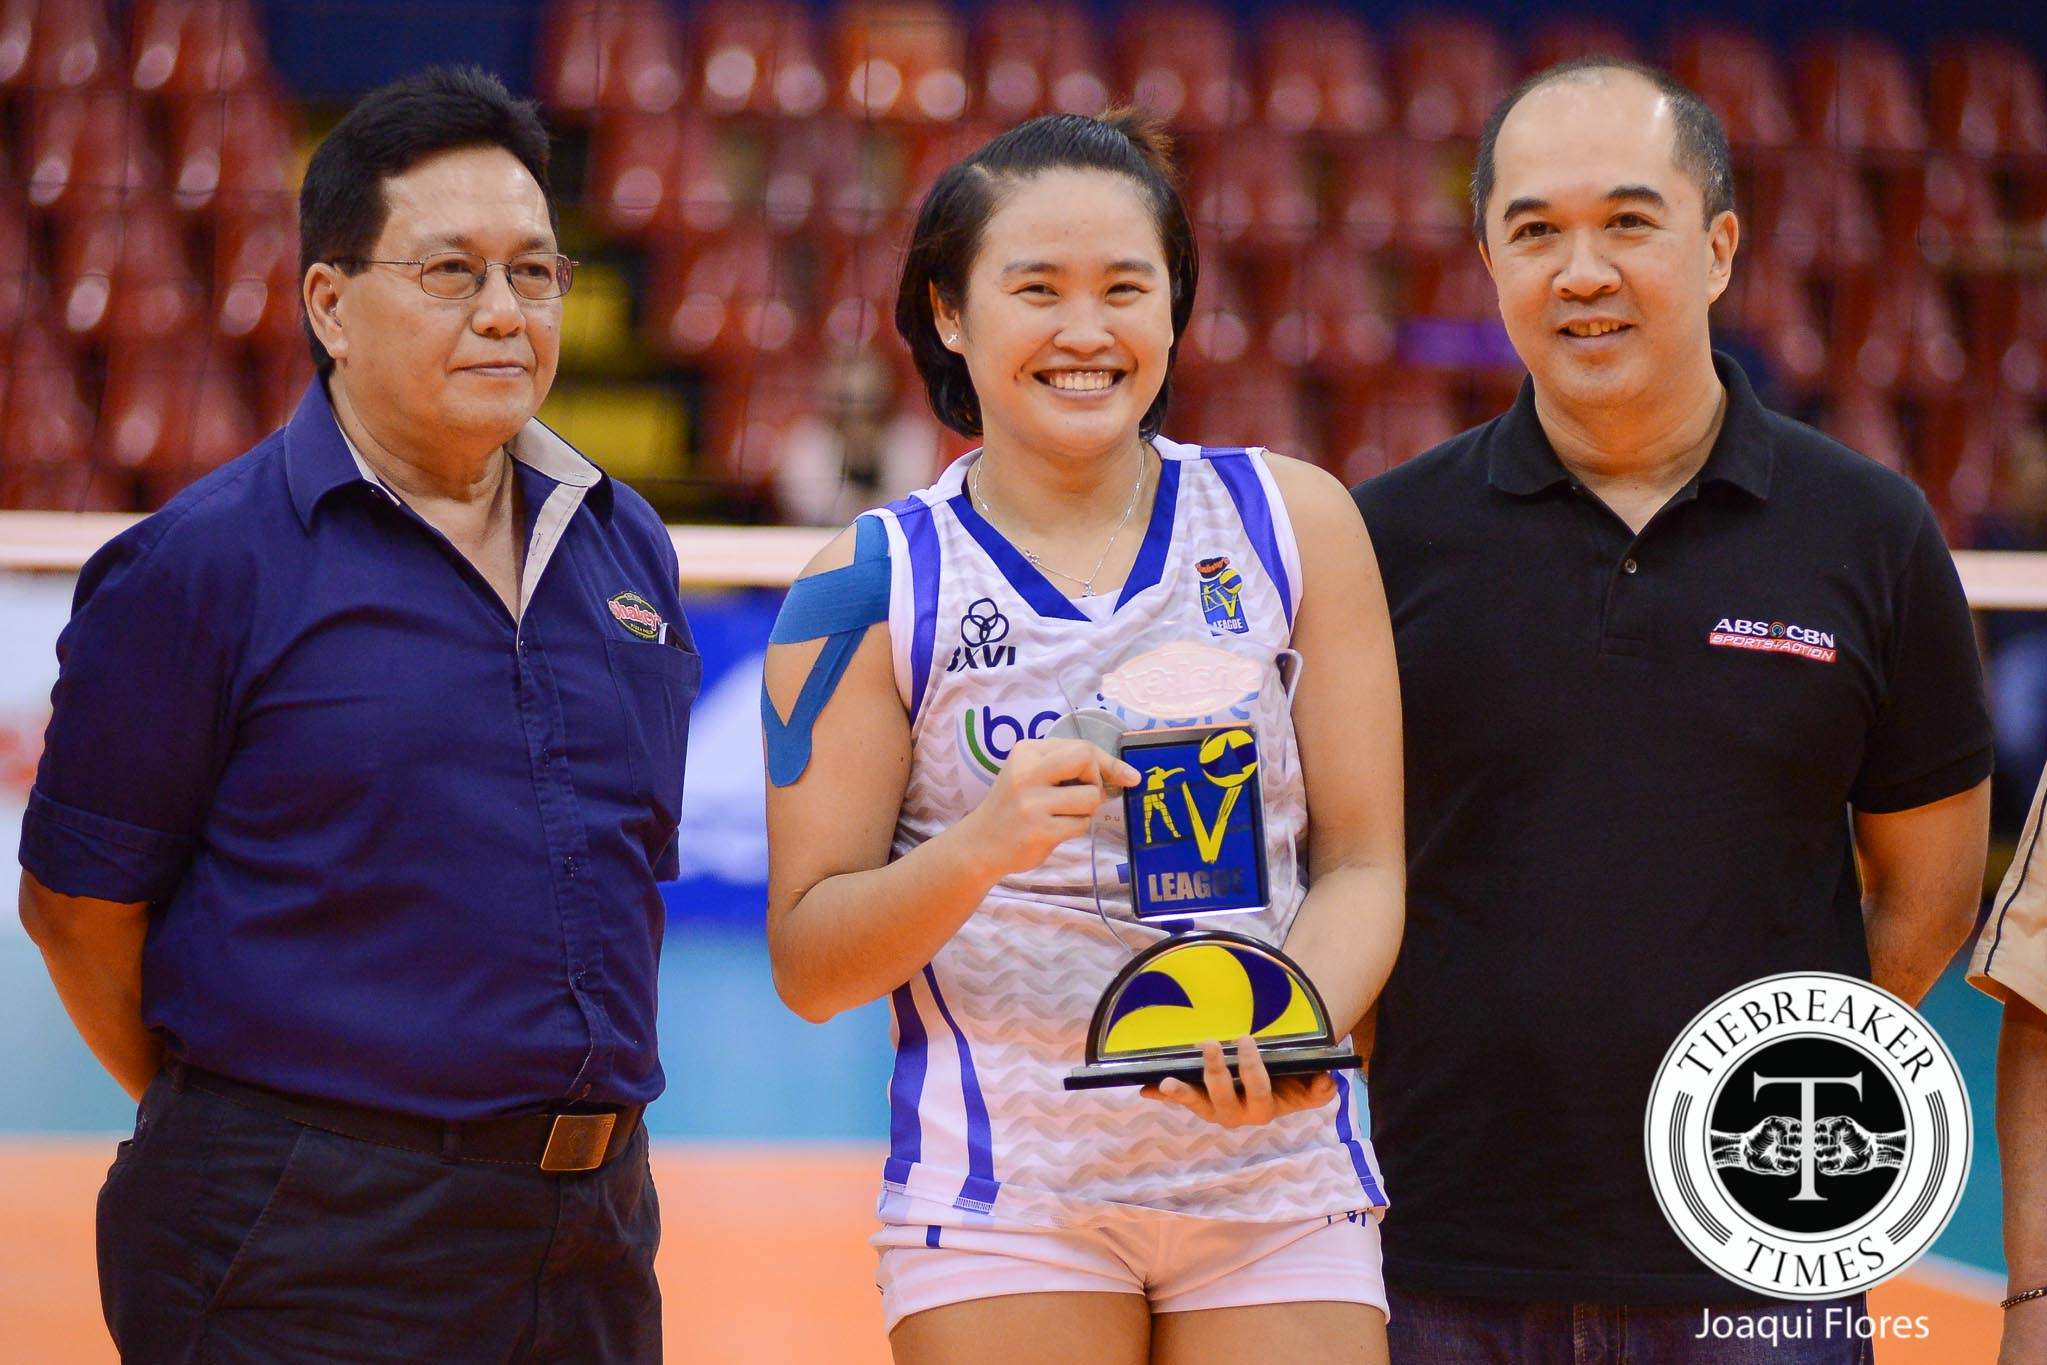 SVL-2016-Awarding-Soltones-1816 'Investment' in PVL pays off for Myla Pablo, Grethcel Soltones News PVL Volleyball  - philippine sports news